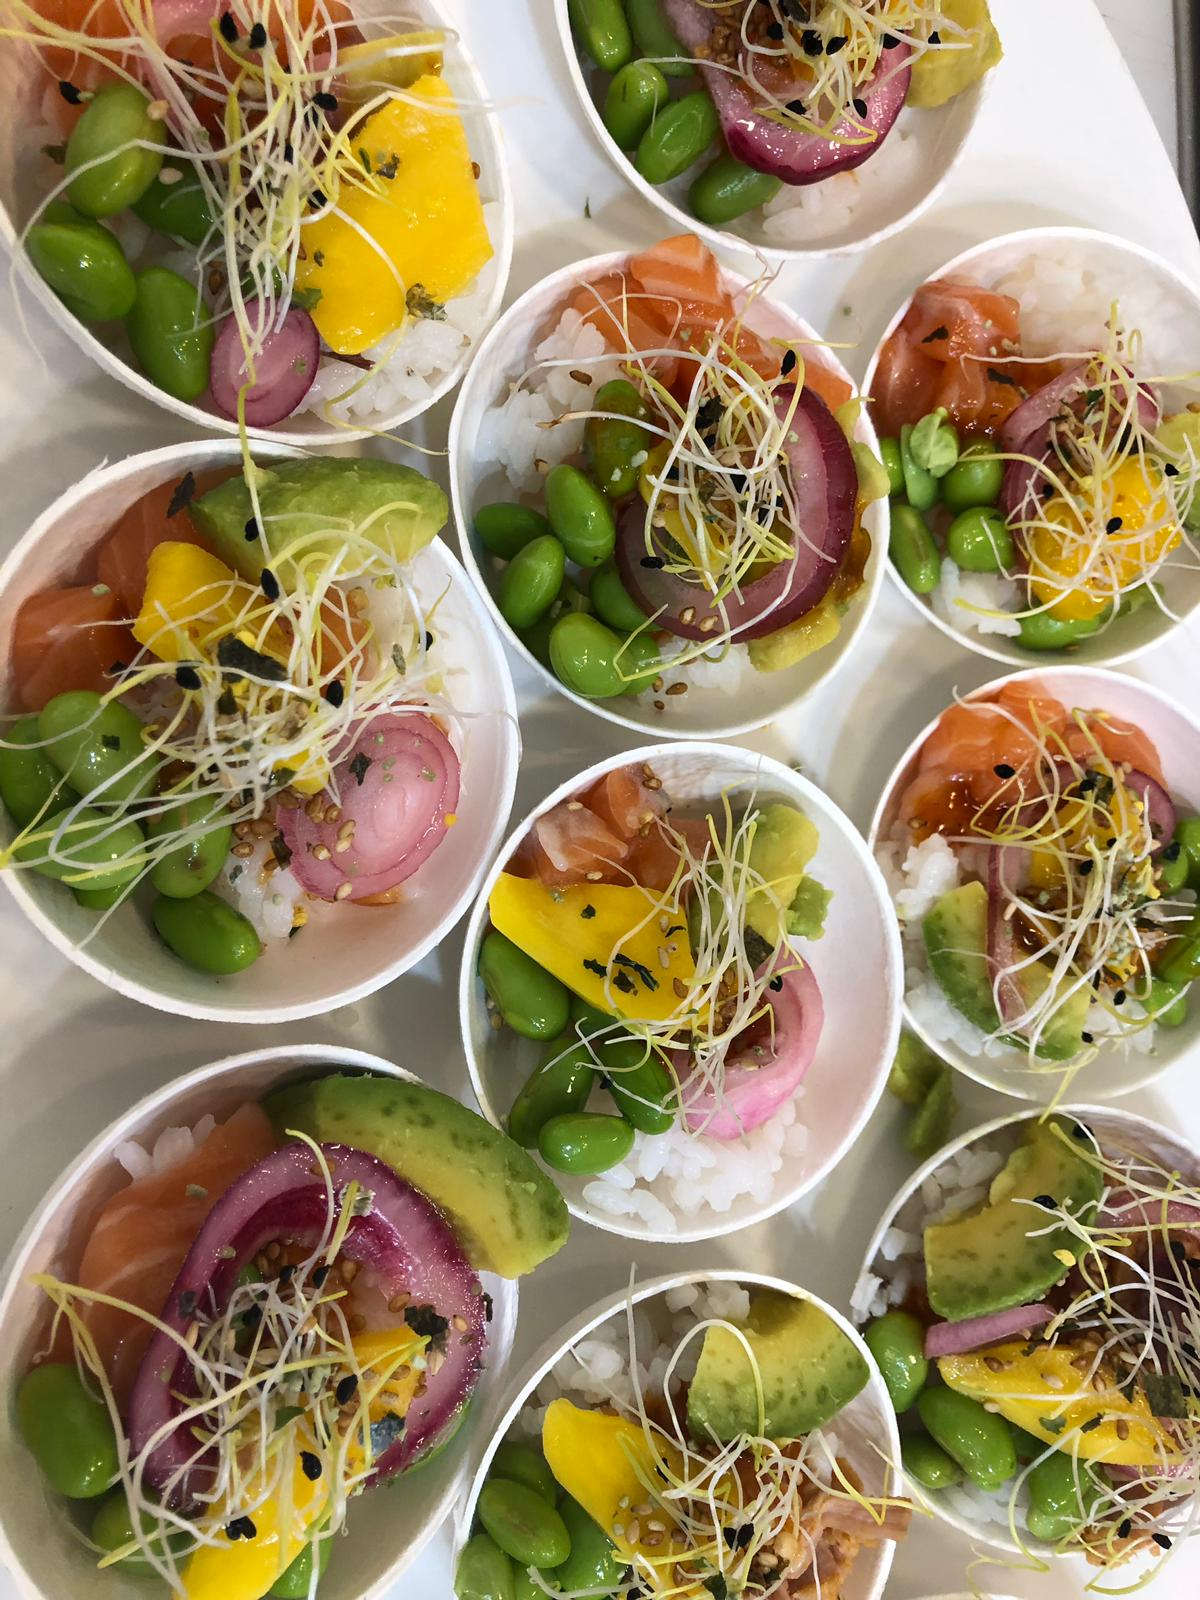 Poke bowl with avocado cubes